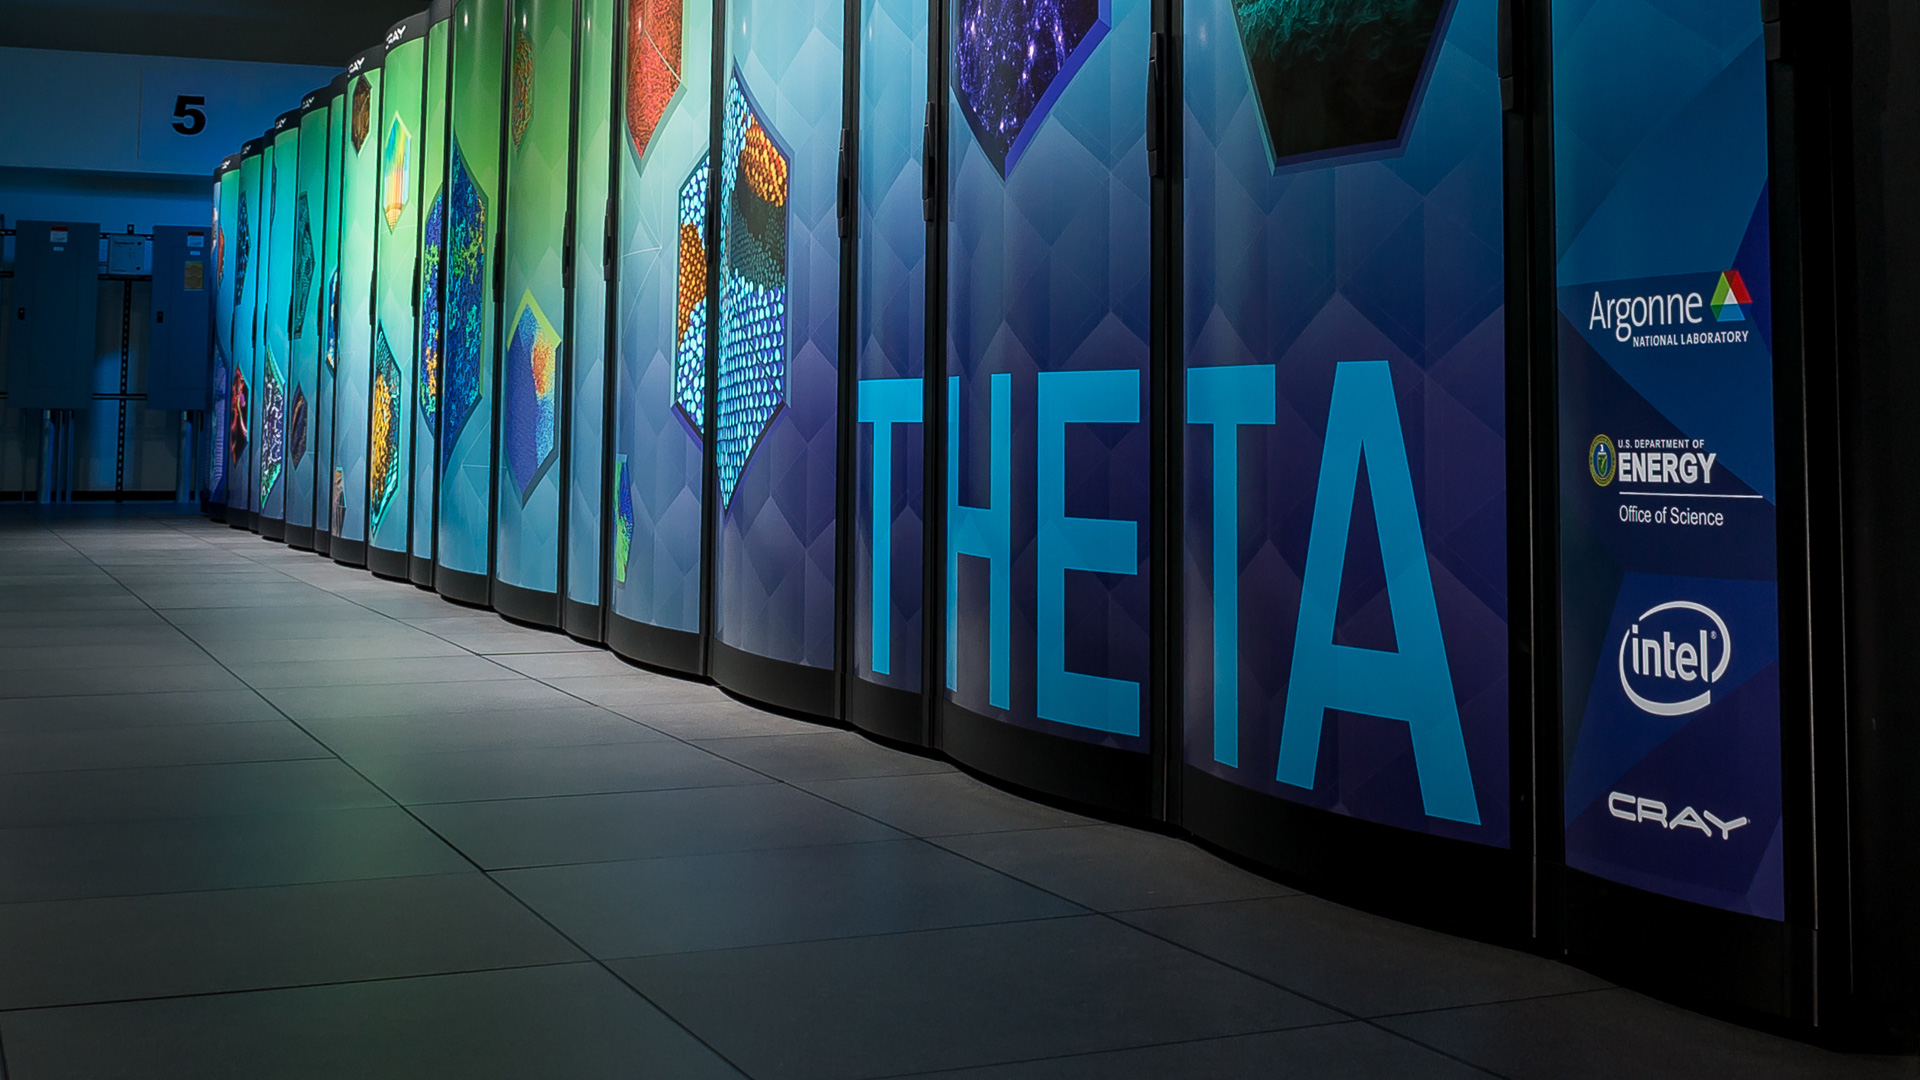 Theta Super Computer at Argonne National Laboratory